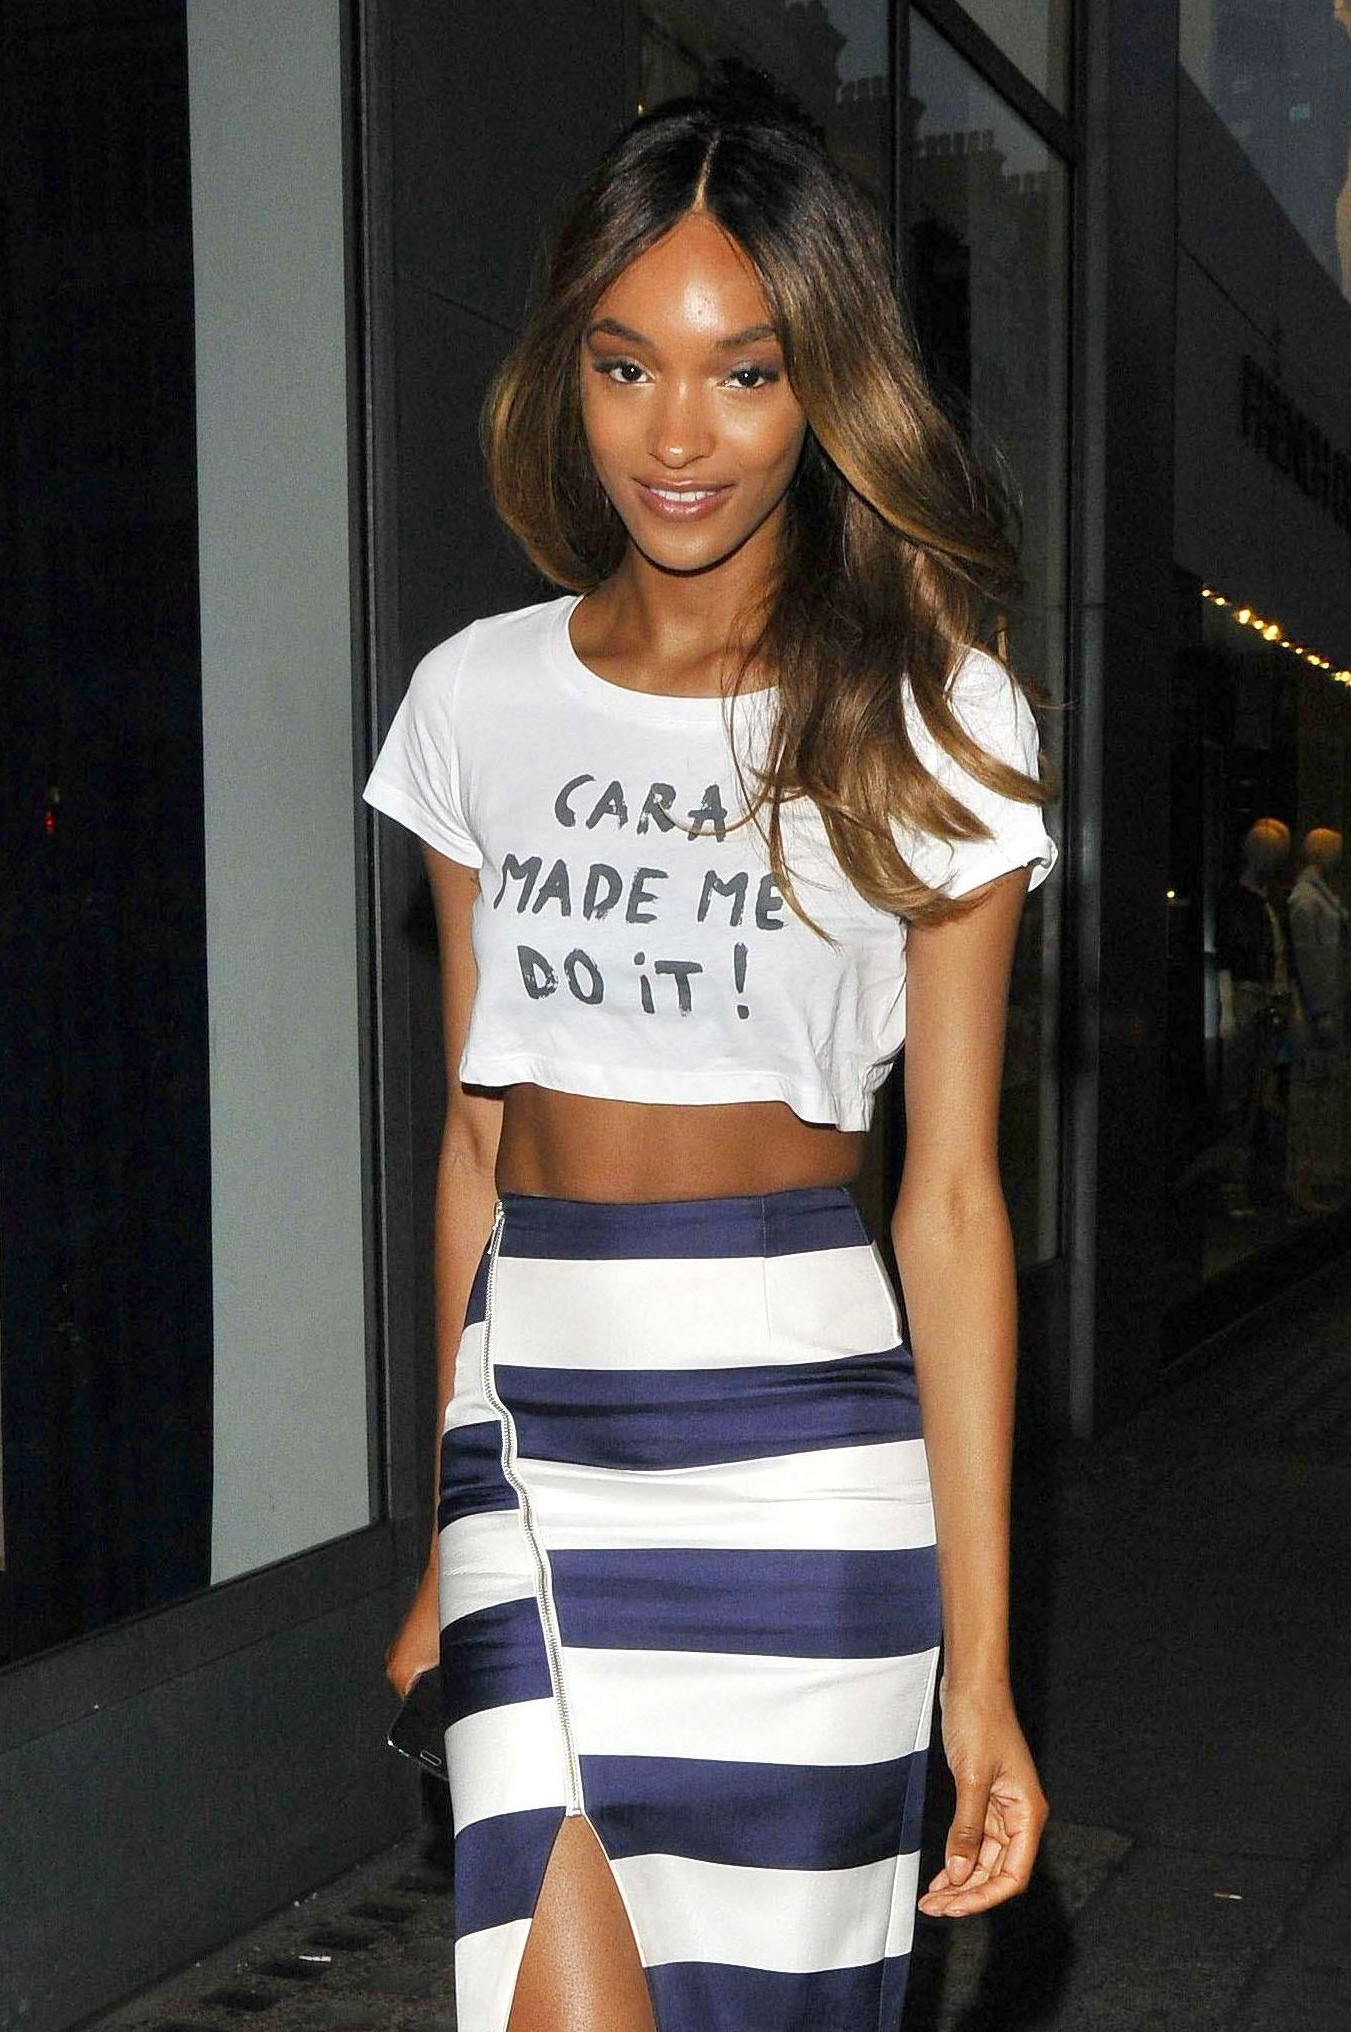 Here's how to get your hands on Jourdan Dunn's 'Cara Made Me Do It' slogan tee